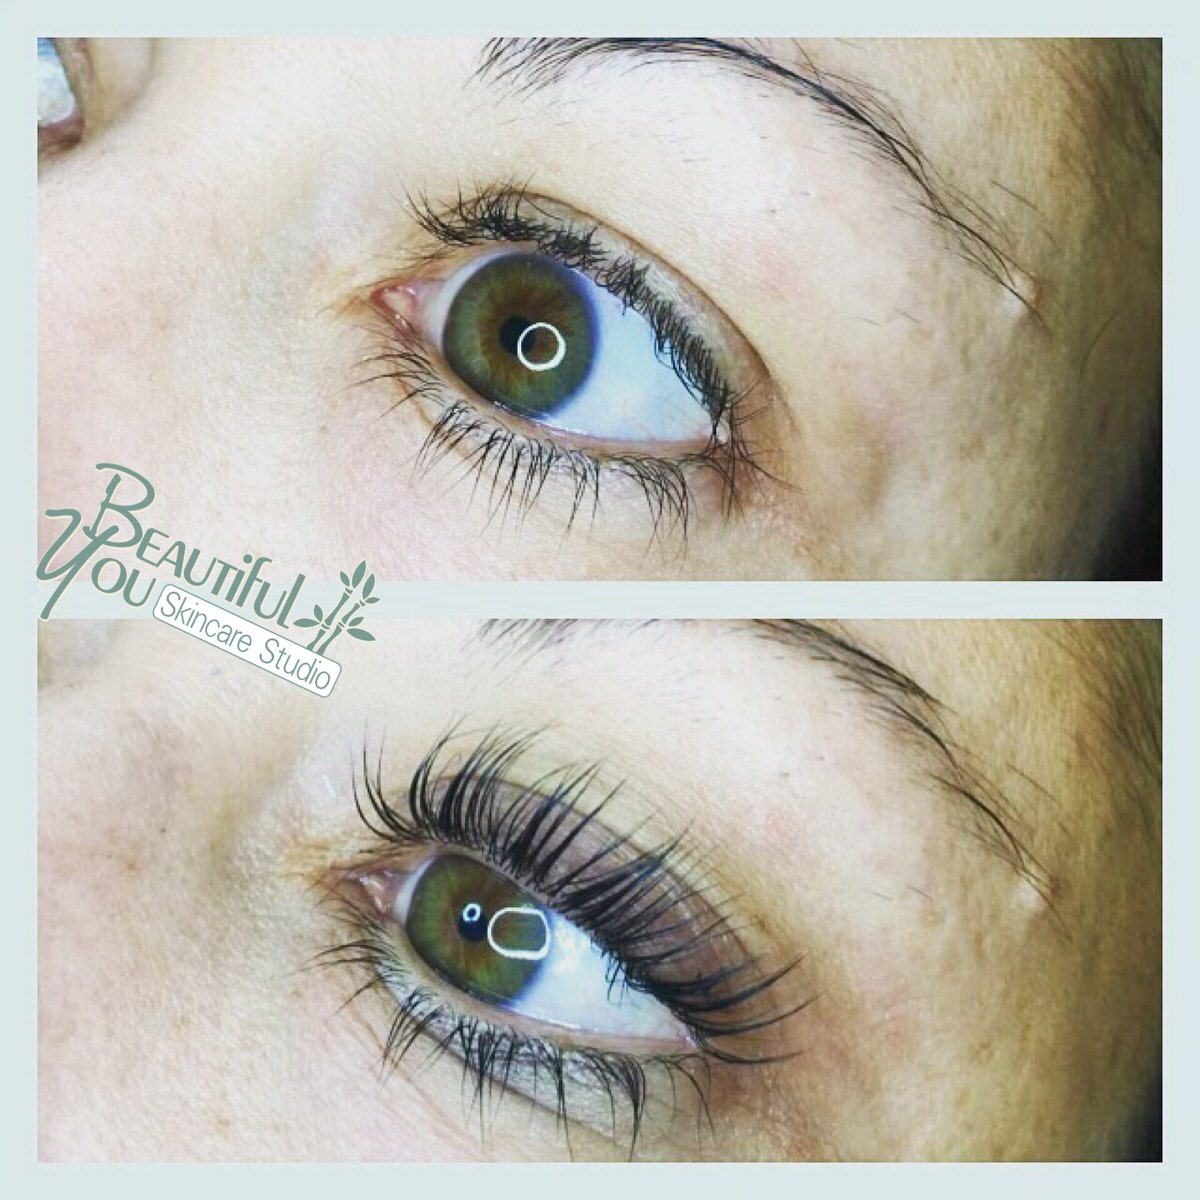 Beautiful-You-Skincare-Studio-Lash-Before-and-After10.jpg